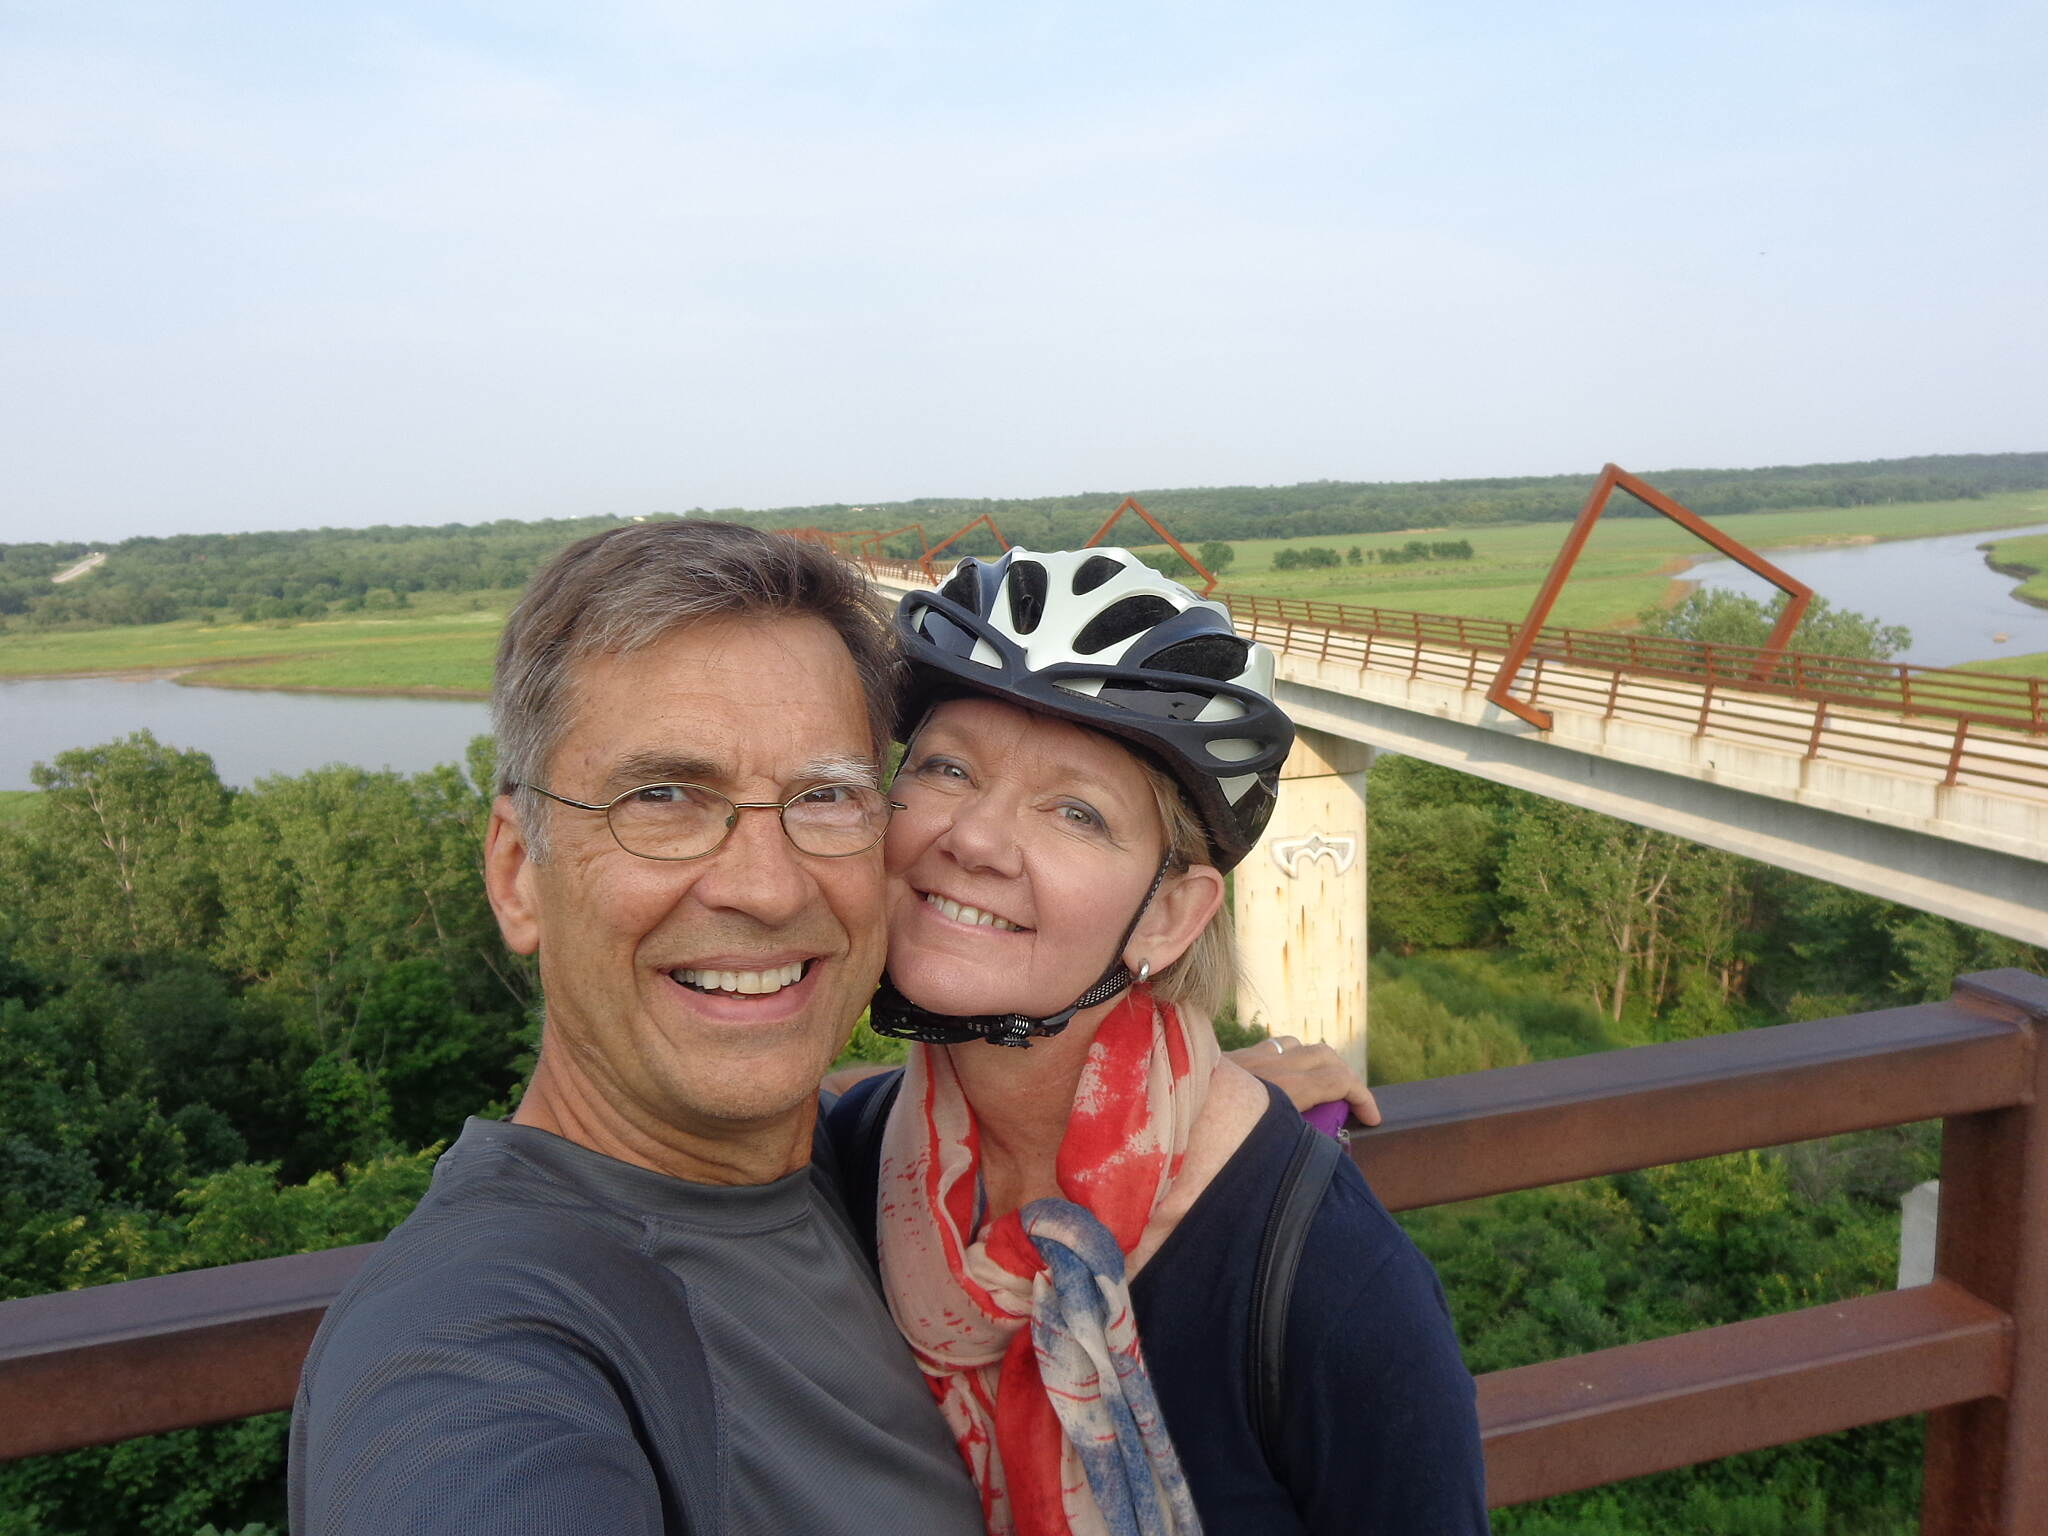 High Trestle Trail July 4th, 2015 Great trail and bridge